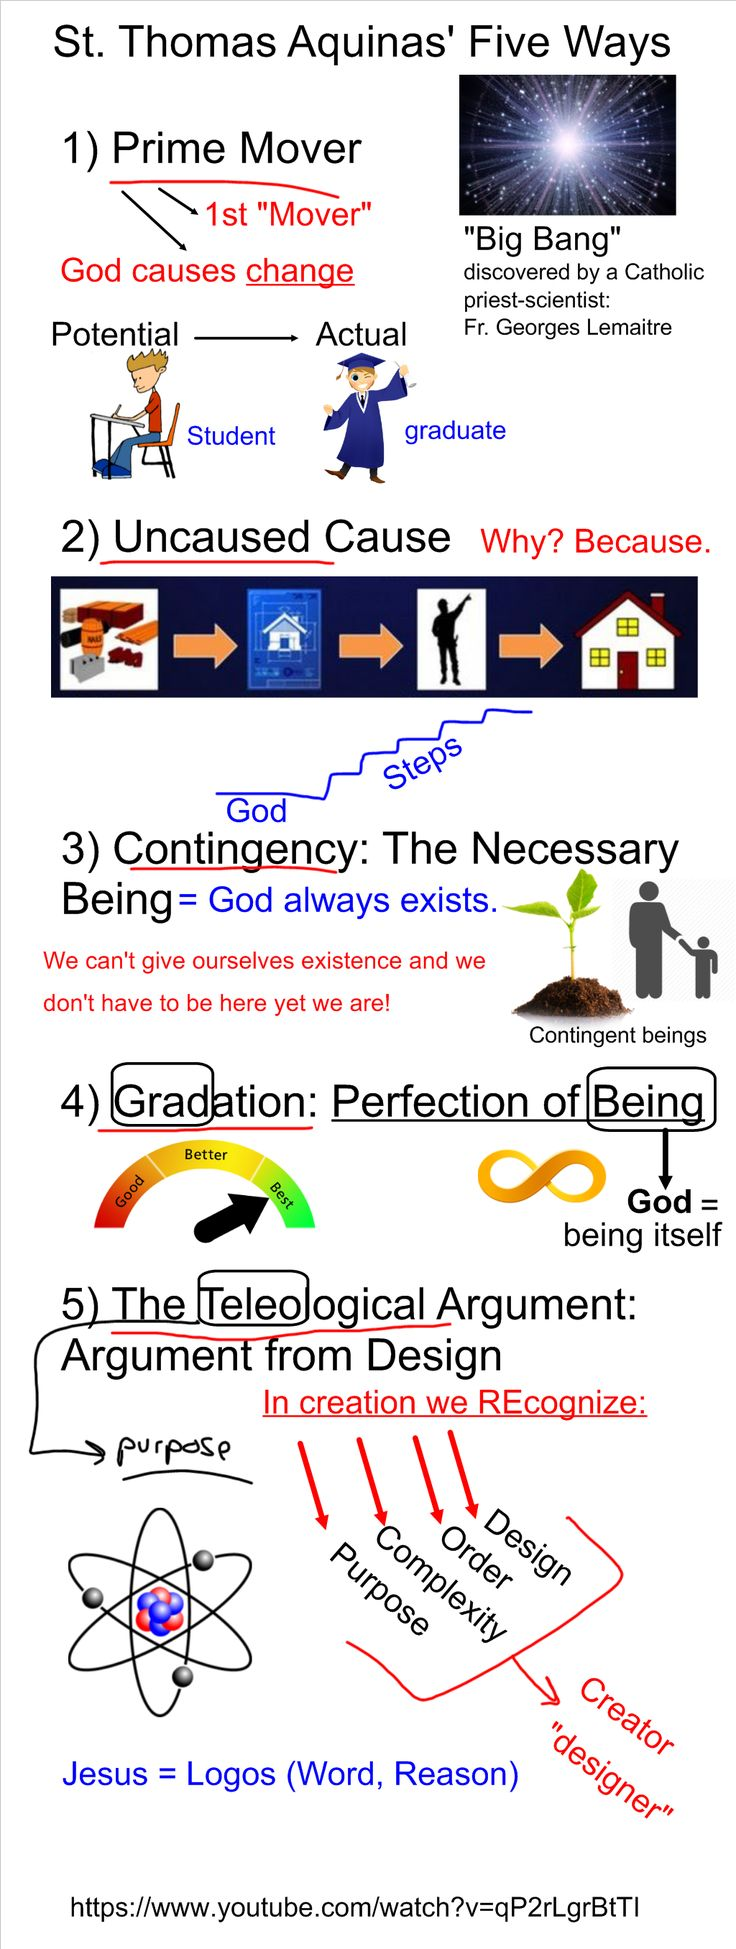 St. Thomas Aquinas' Five Ways (or explanations to prove the existence of God).